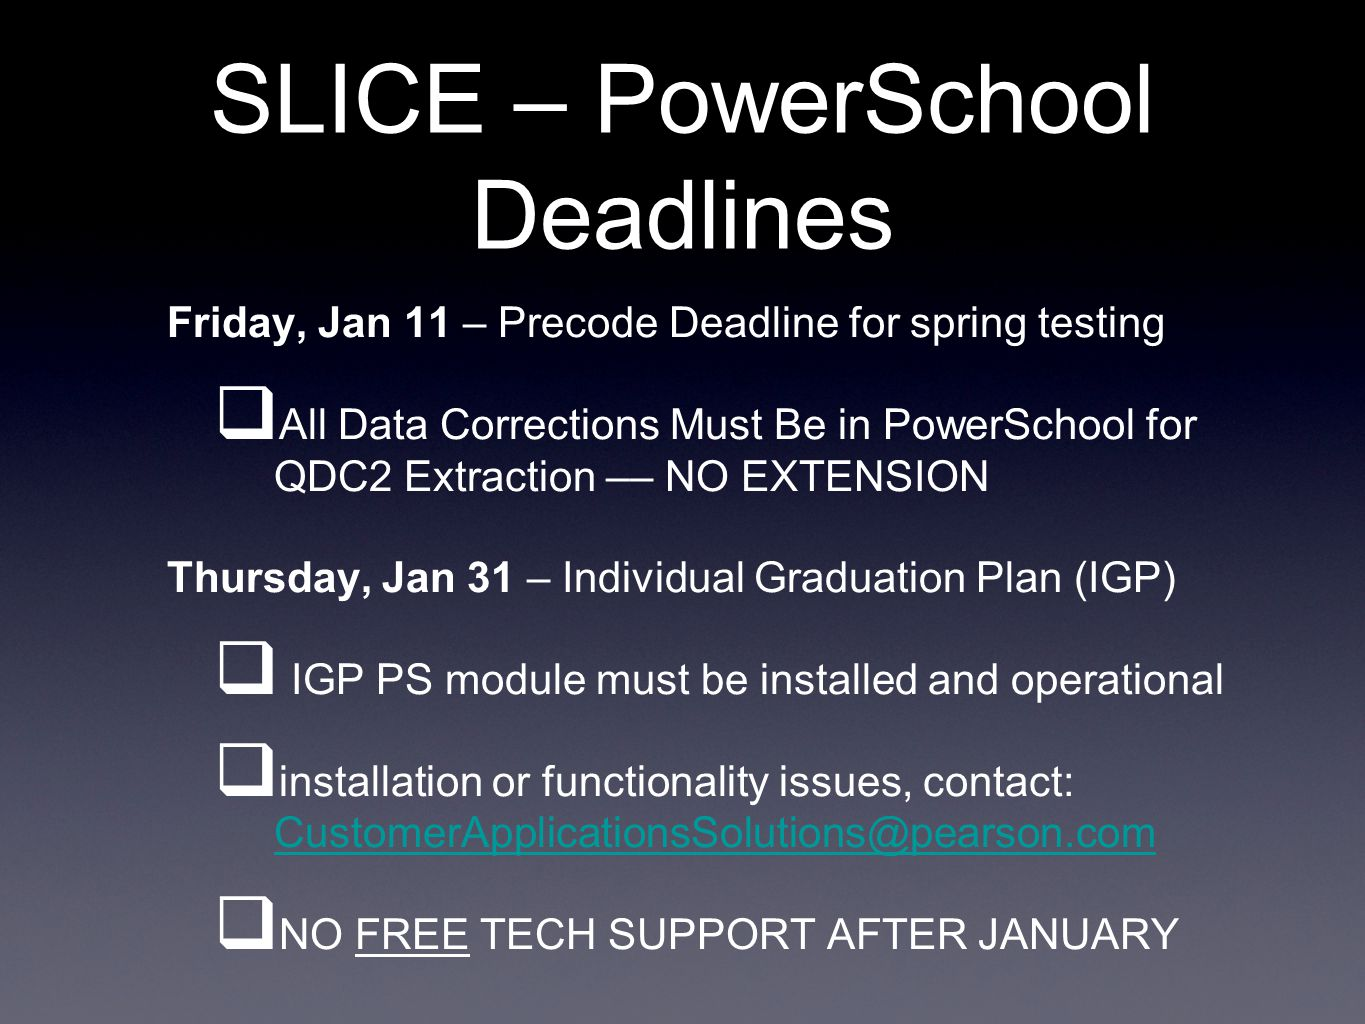 SLICE – PowerSchool Deadlines Friday, Jan 11 – Precode Deadline for spring testing  All Data Corrections Must Be in PowerSchool for QDC2 Extraction –– NO EXTENSION Thursday, Jan 31 – Individual Graduation Plan (IGP)  IGP PS module must be installed and operational  installation or functionality issues, contact: CustomerApplicationsSolutions@pearson.com CustomerApplicationsSolutions@pearson.com  NO FREE TECH SUPPORT AFTER JANUARY